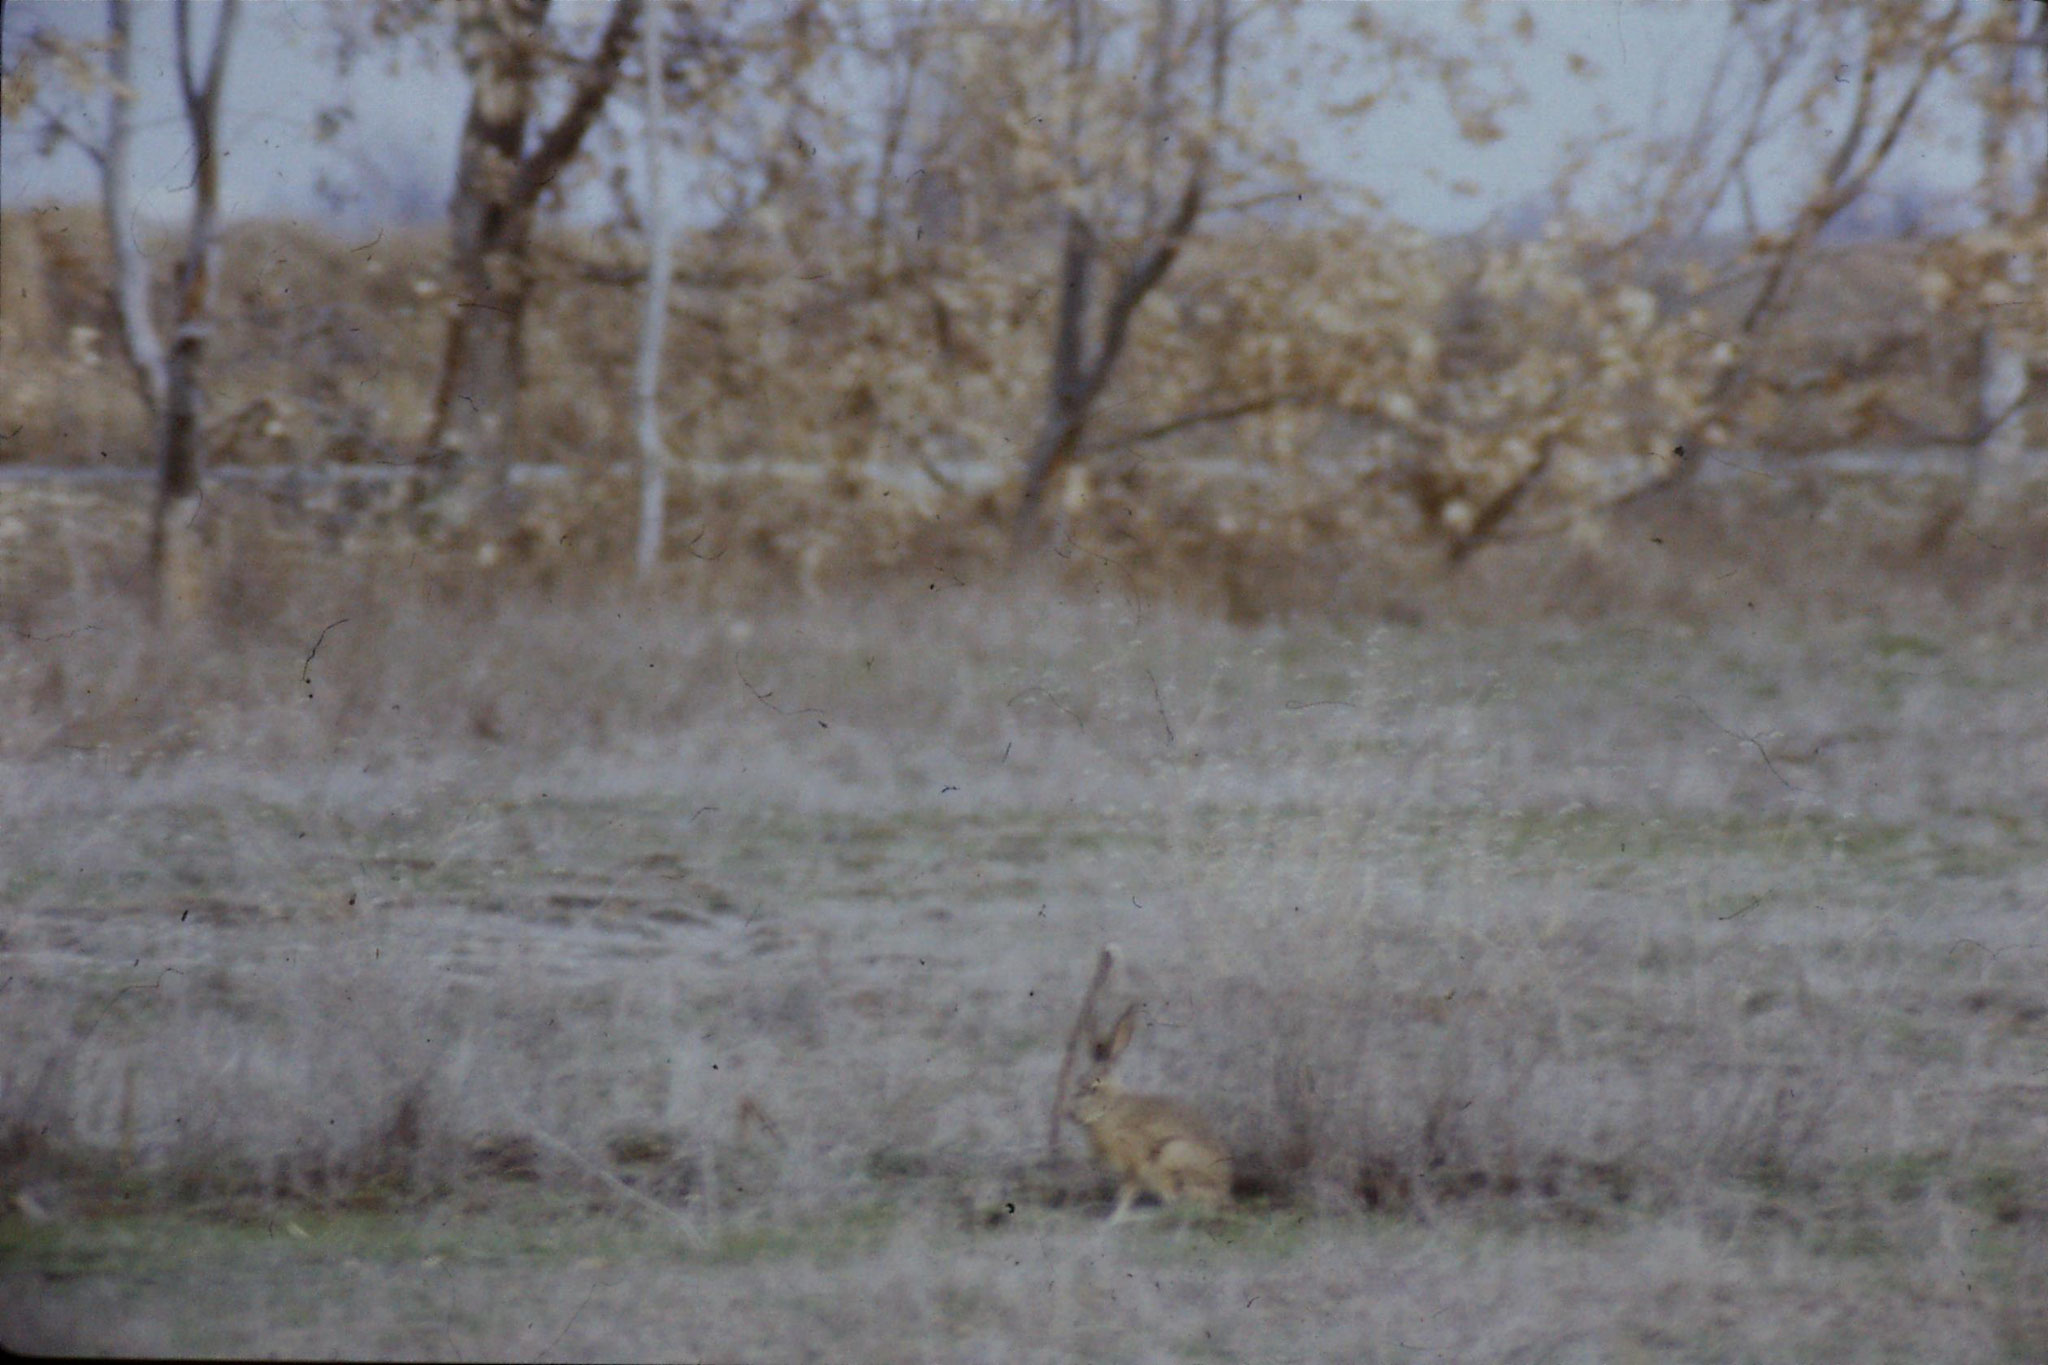 15/2/1991: 16: Sacramento NWR, Black Tailed Jack Rabbit